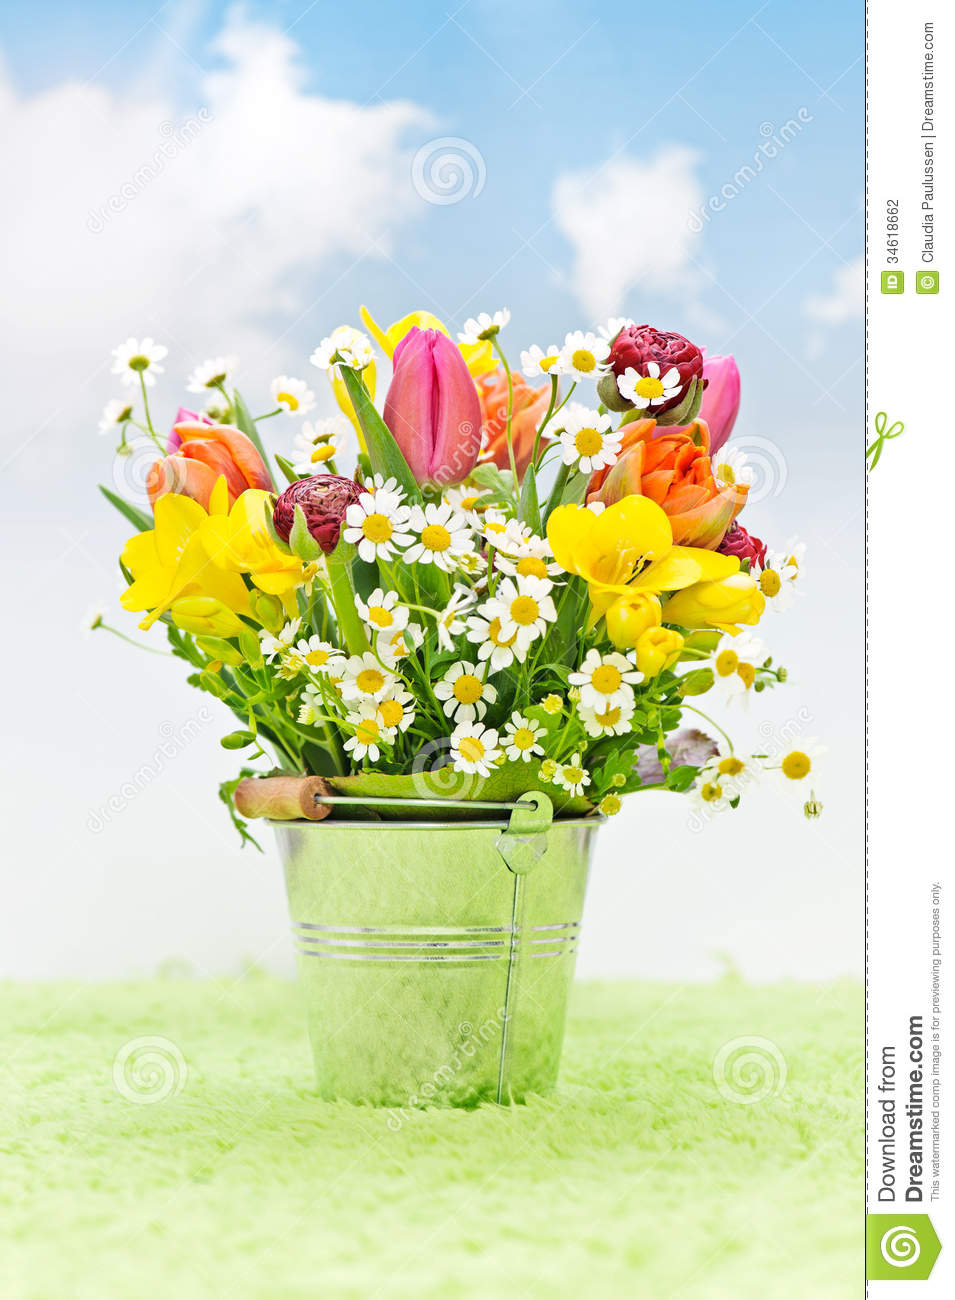 Spring flowers in a bucket stock photo image of green 34618662 spring flowers in a bucket mightylinksfo